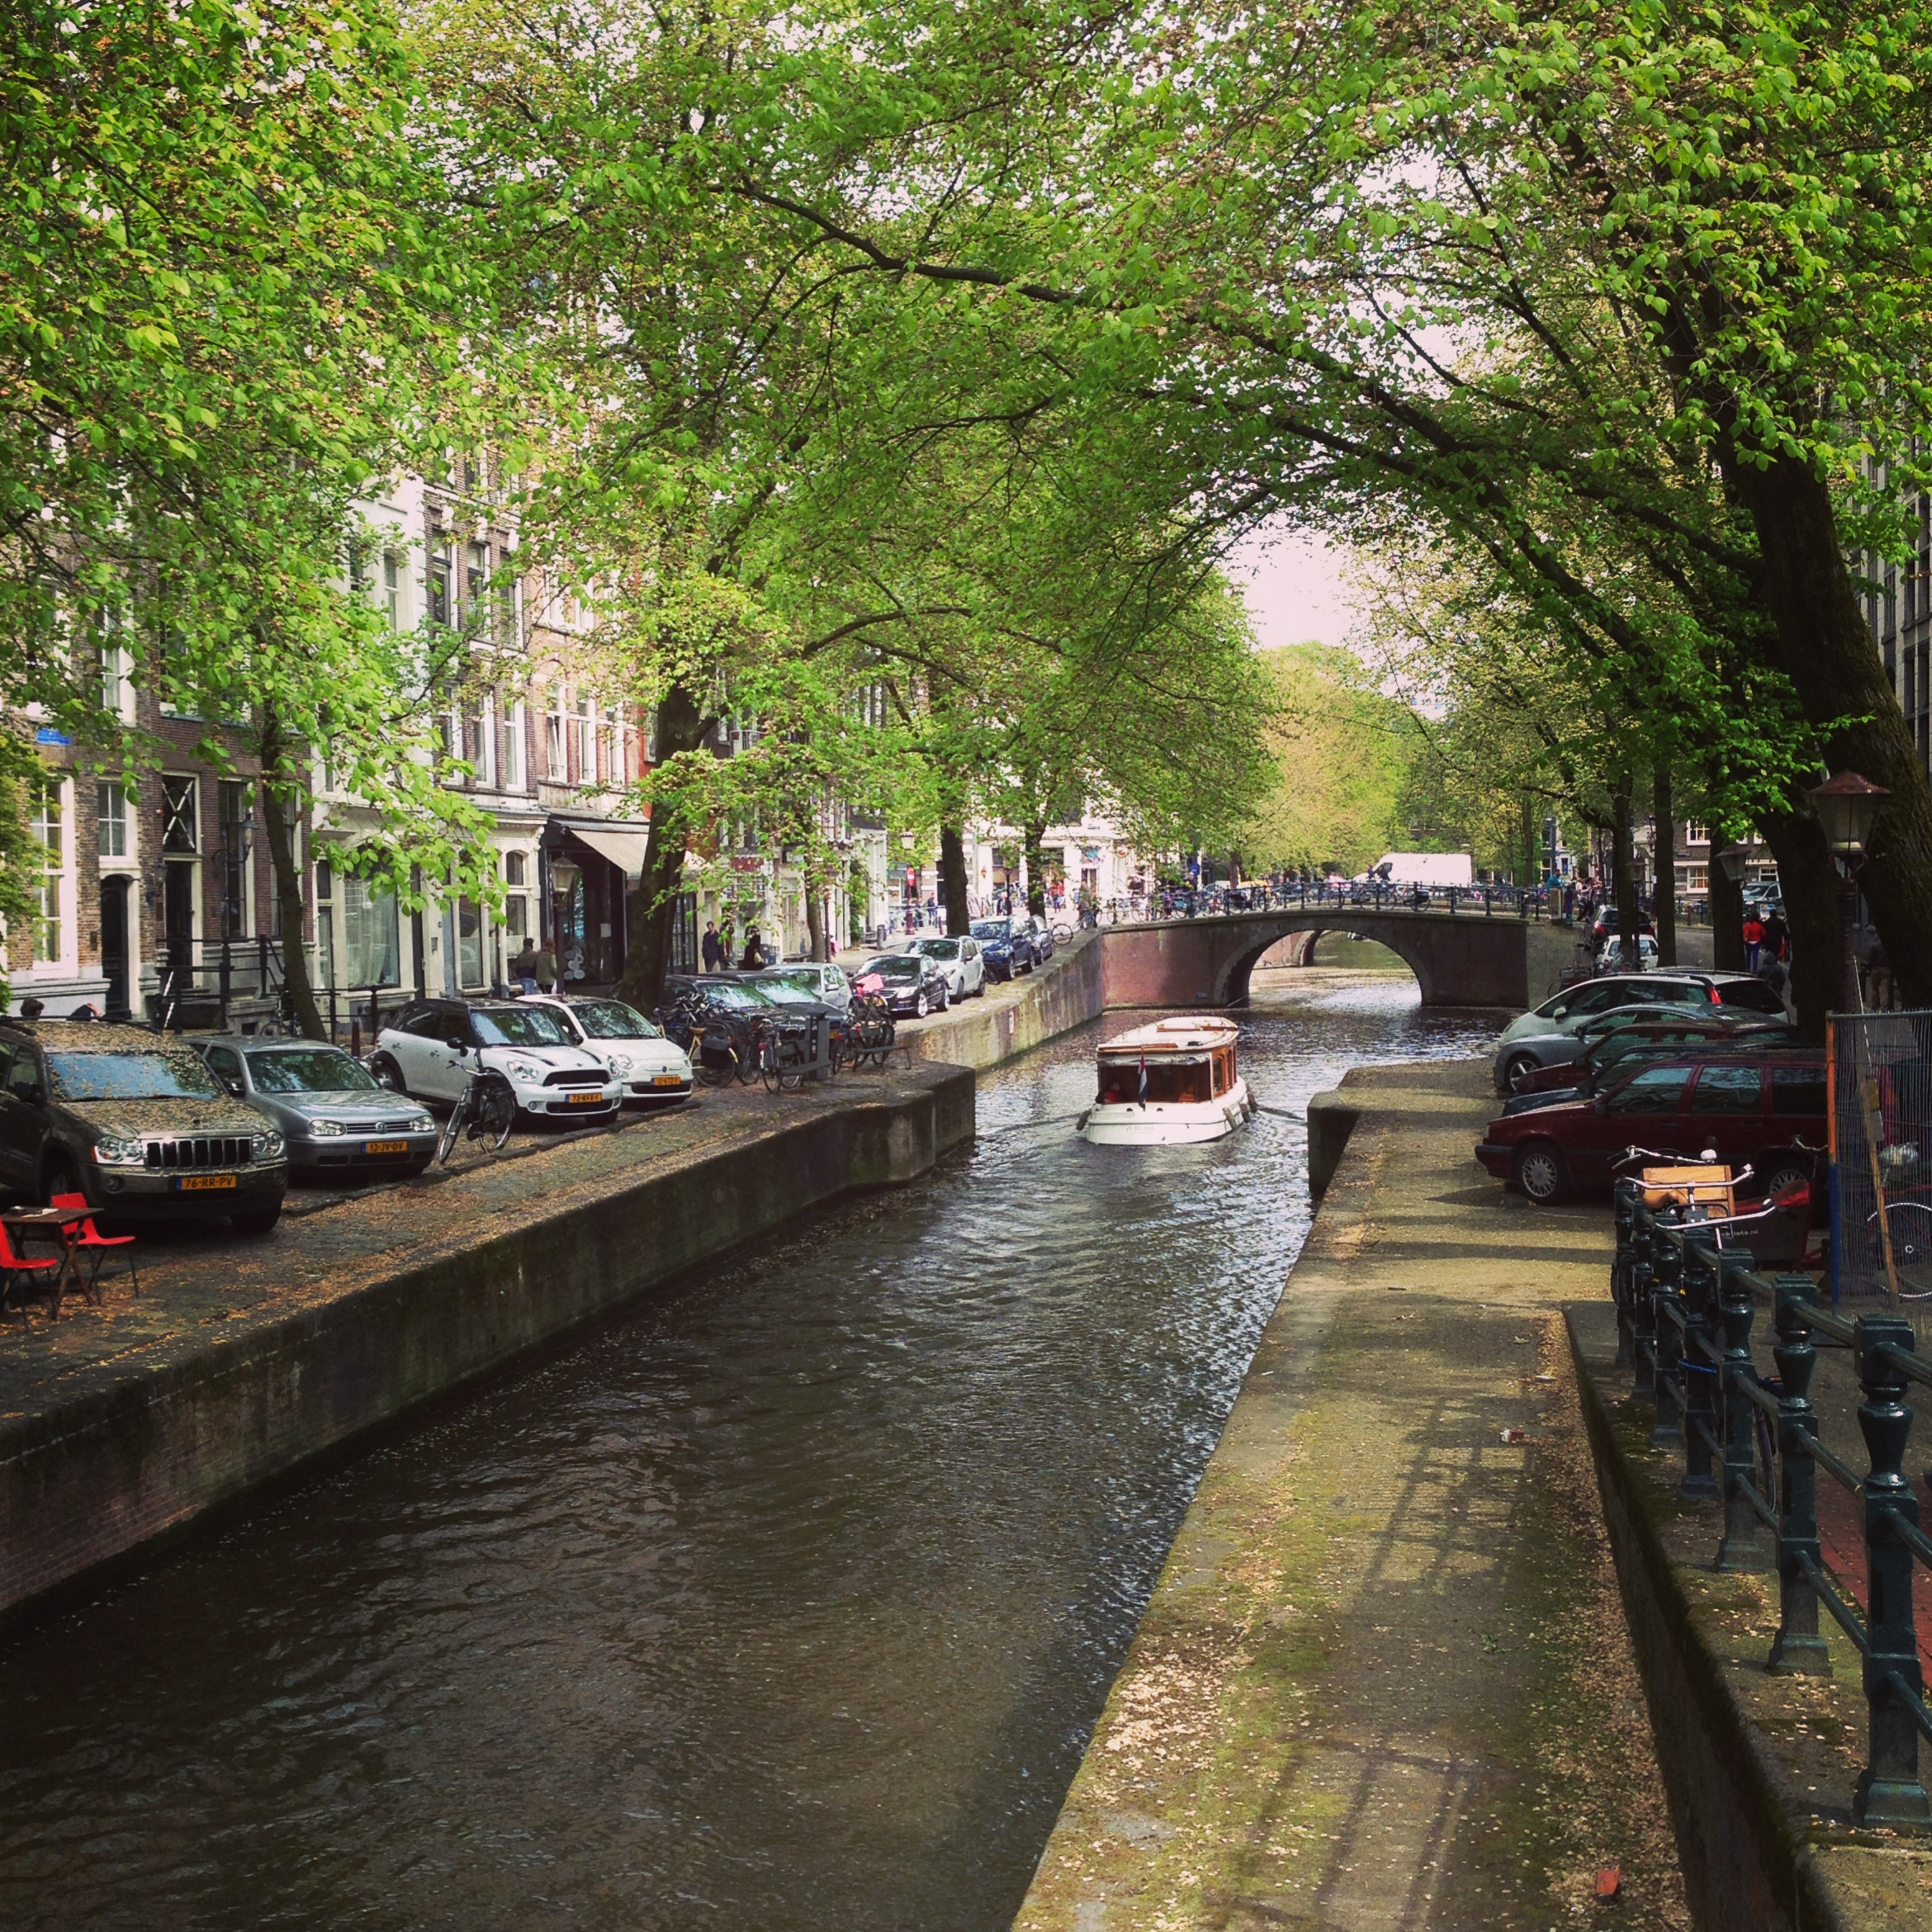 Amsterdam: In pictures